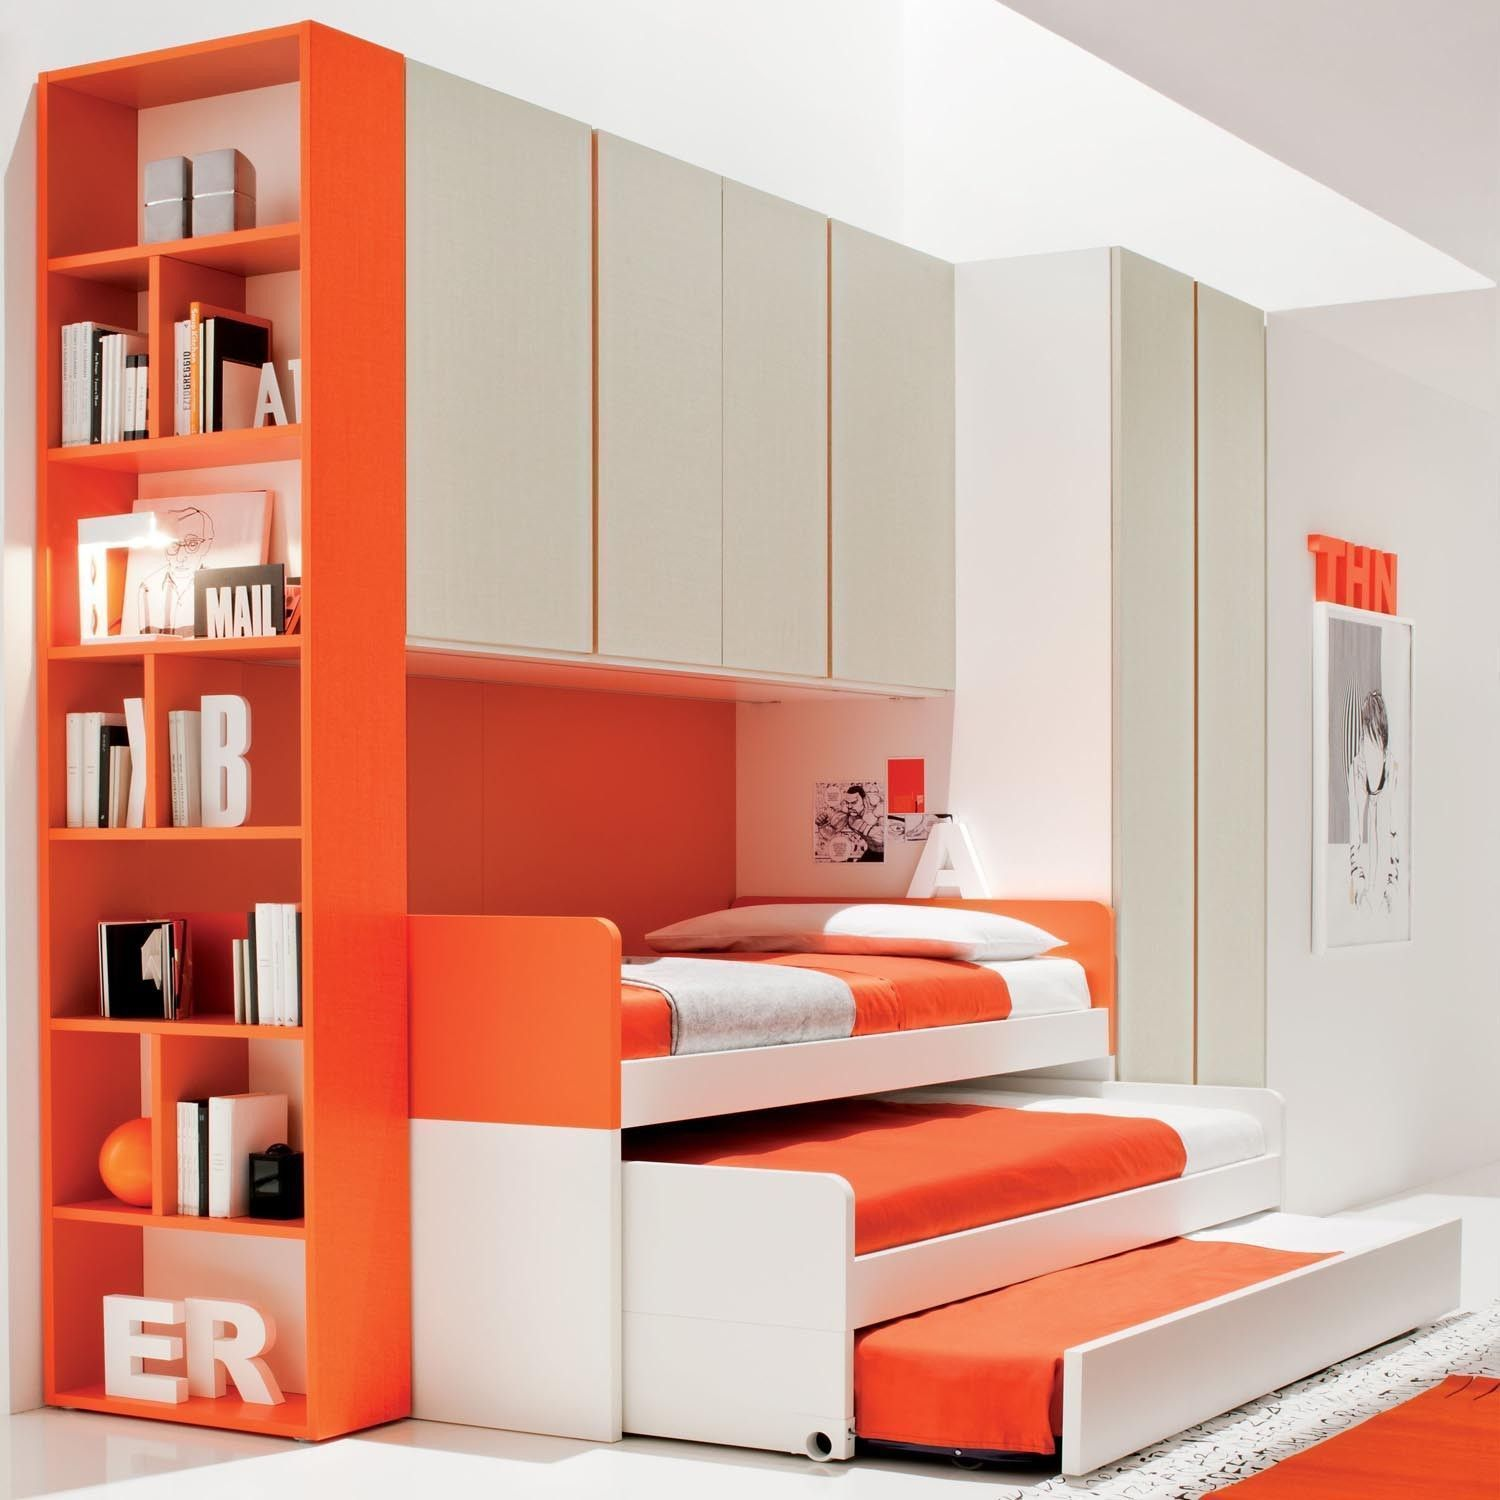 Splendid Modern Space Saving Bedroom Furniture Sets For Kids Design With  White Orange Bunk Bed Along